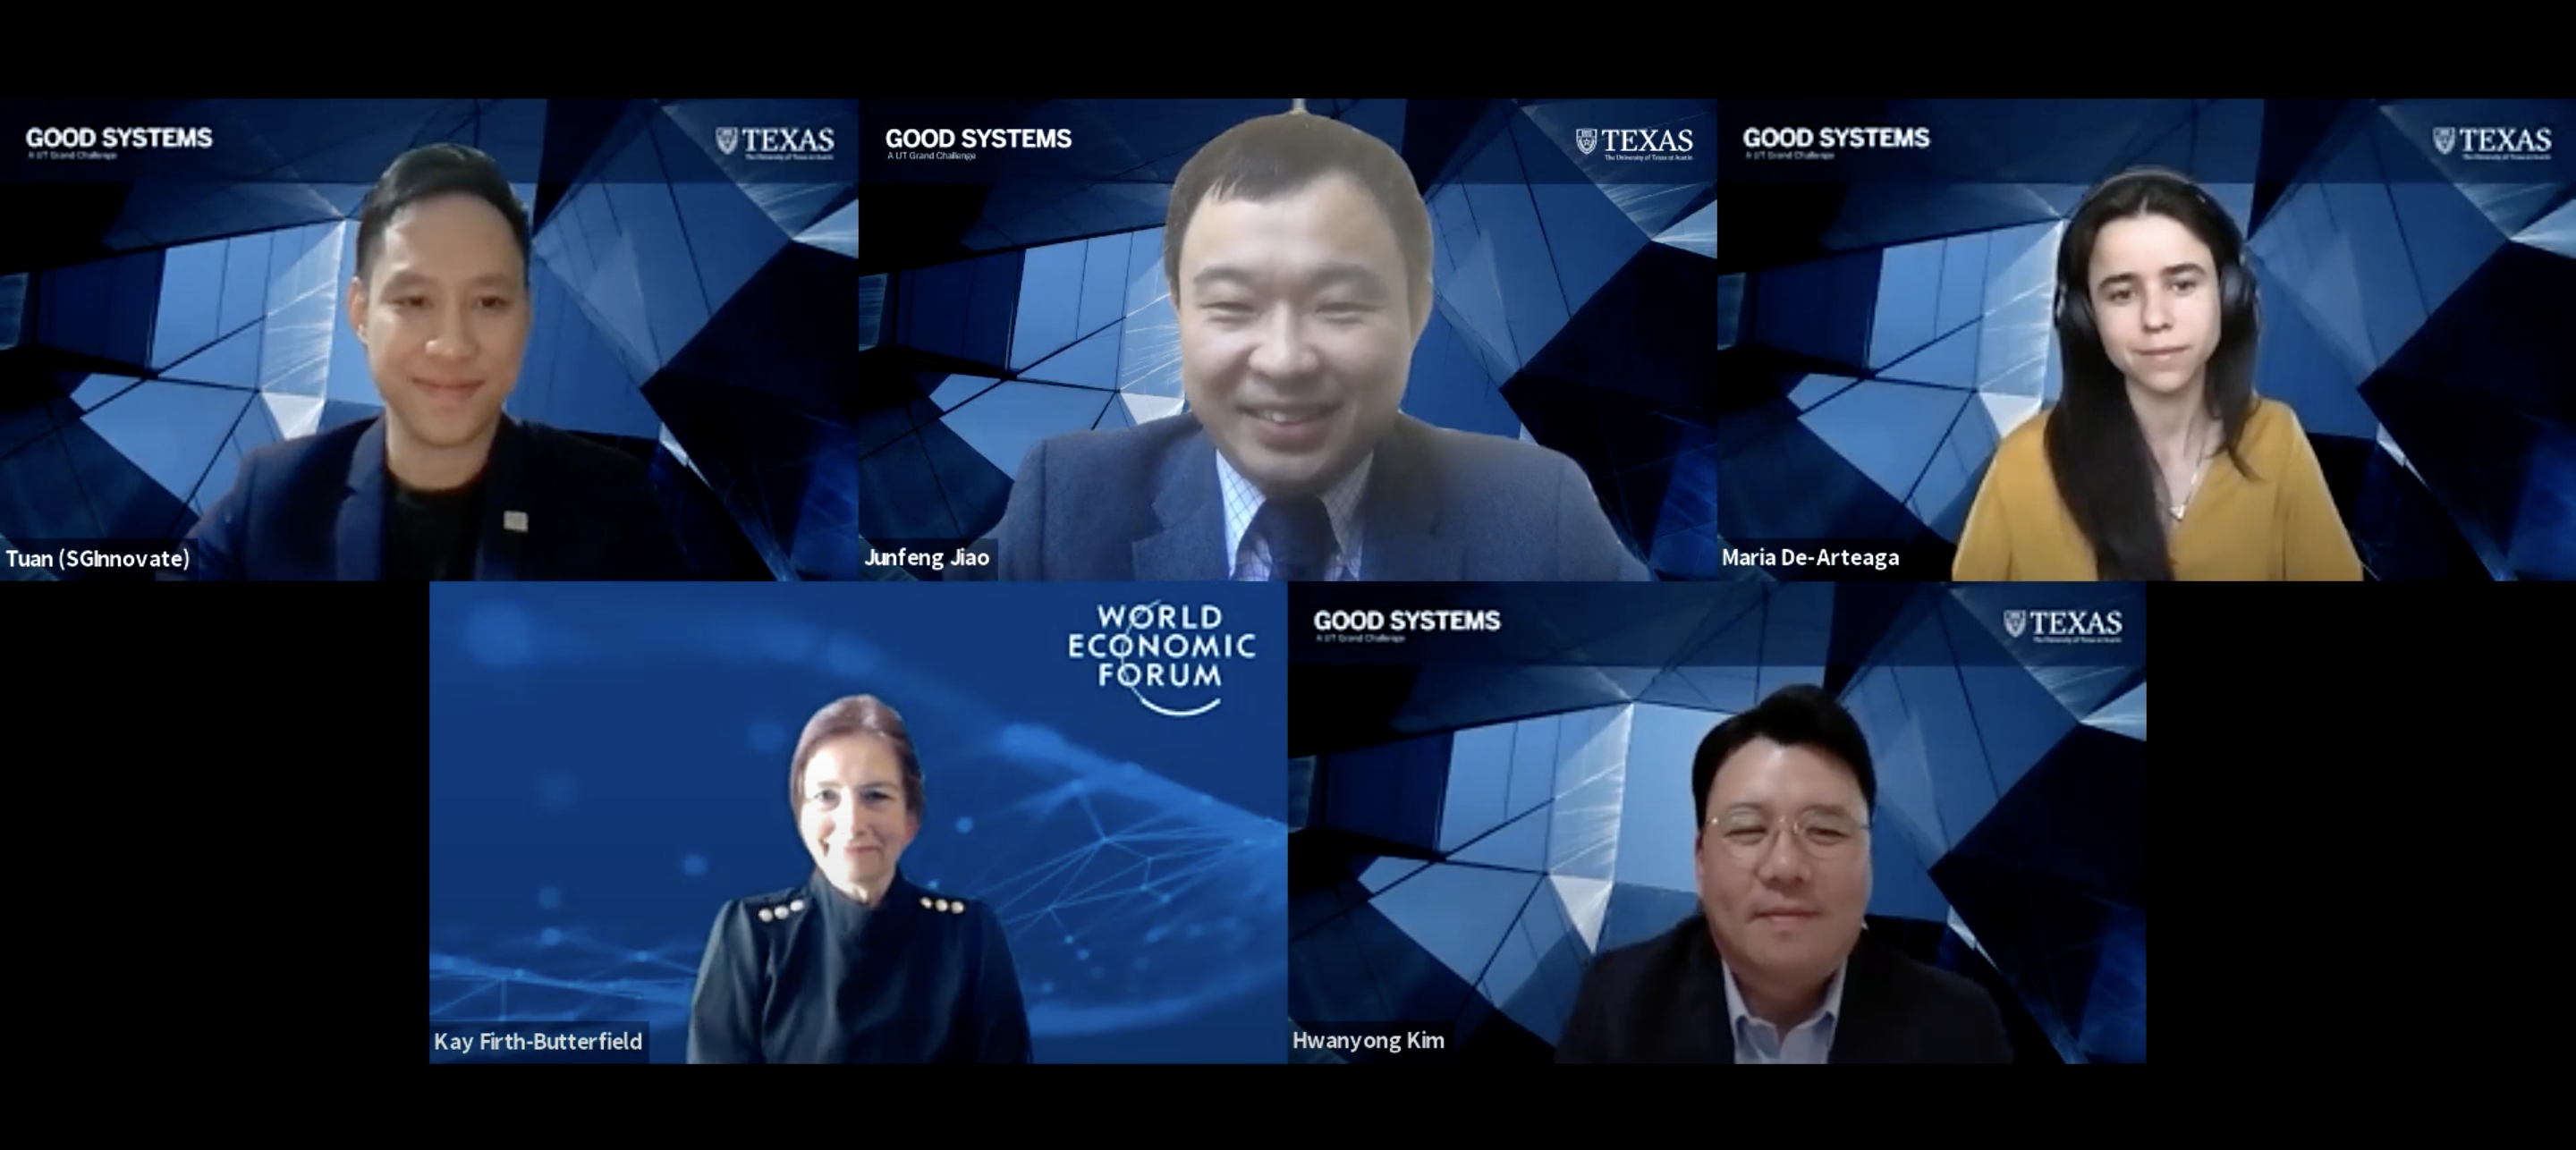 Zoom video image of five university, industry and machine learning experts participating in a virtual forum.